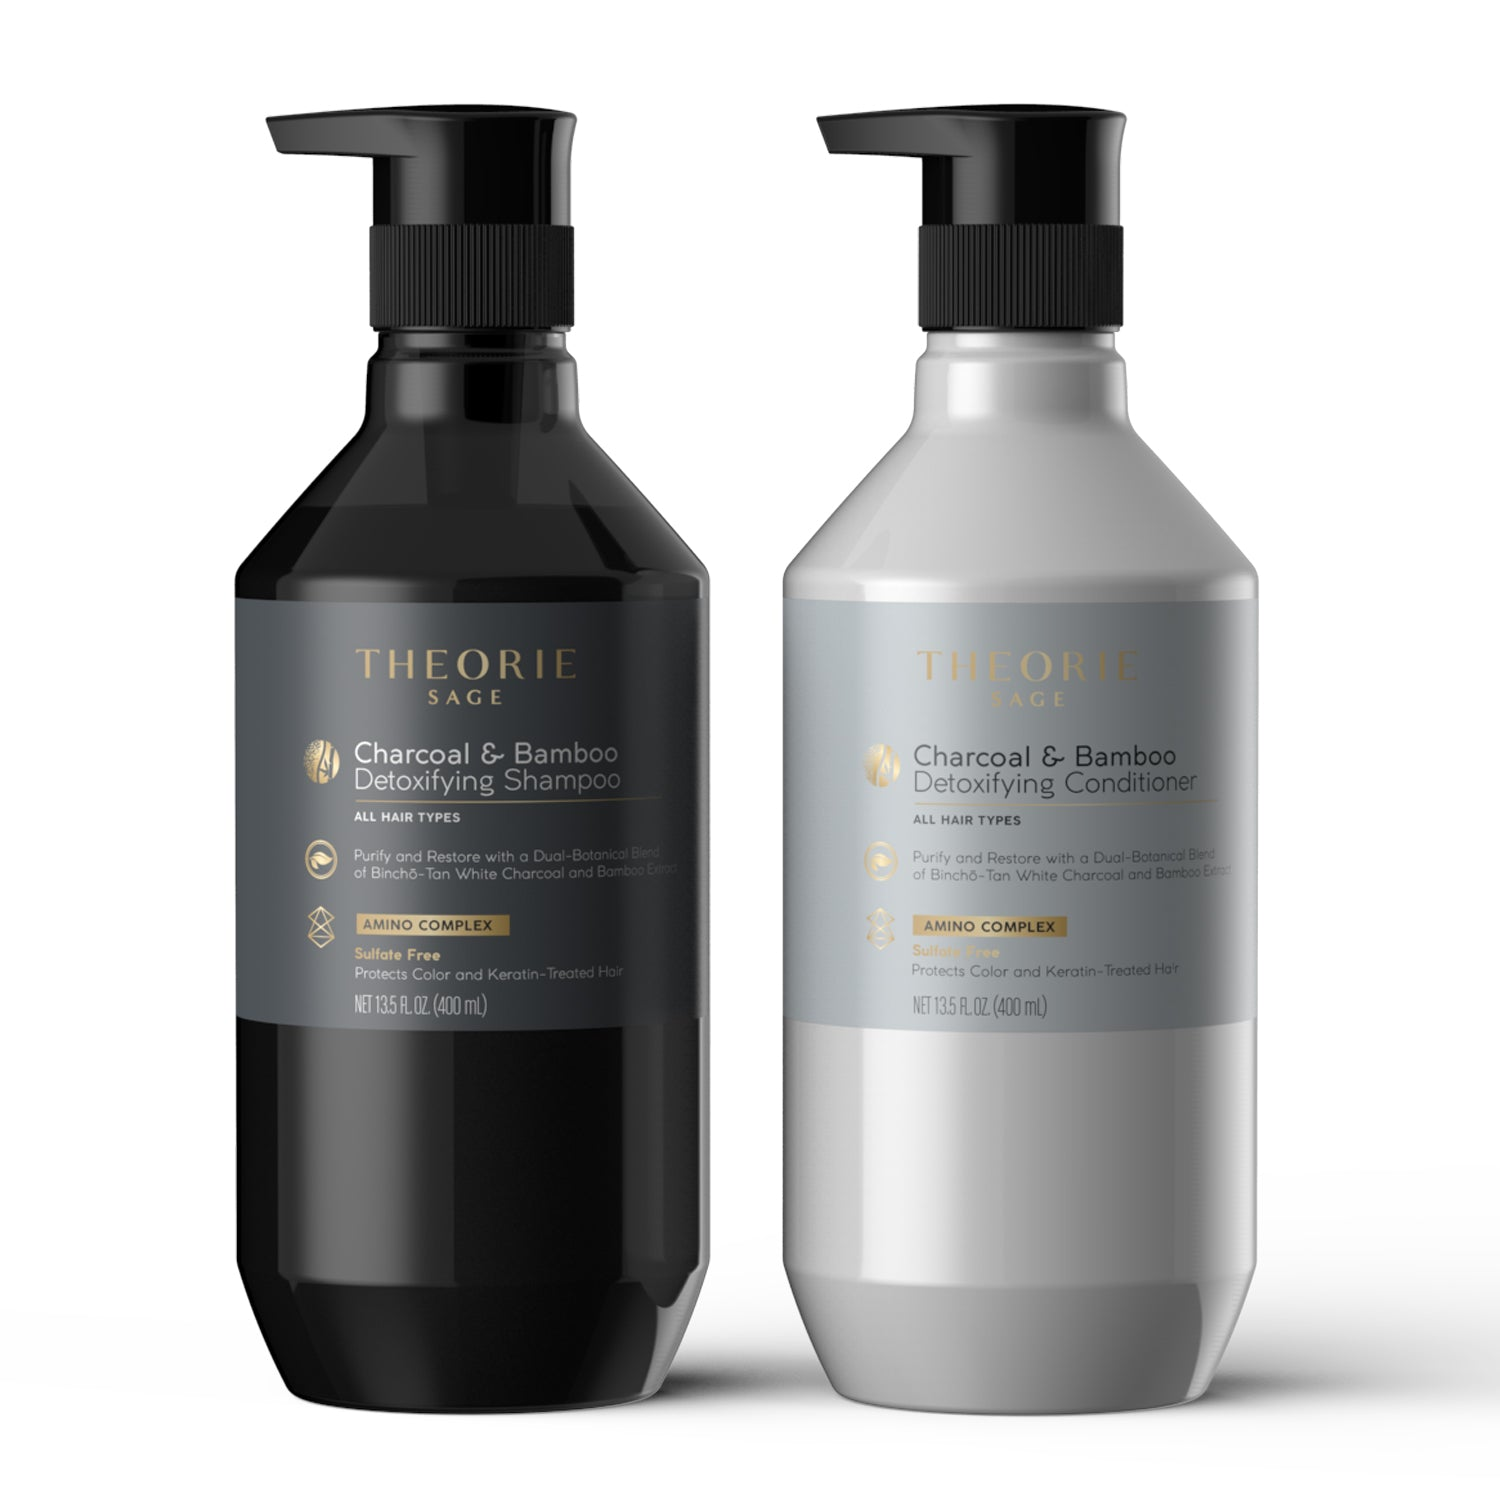 Sage - Charcoal & Bamboo Detoxifying Shampoo & Condition Set